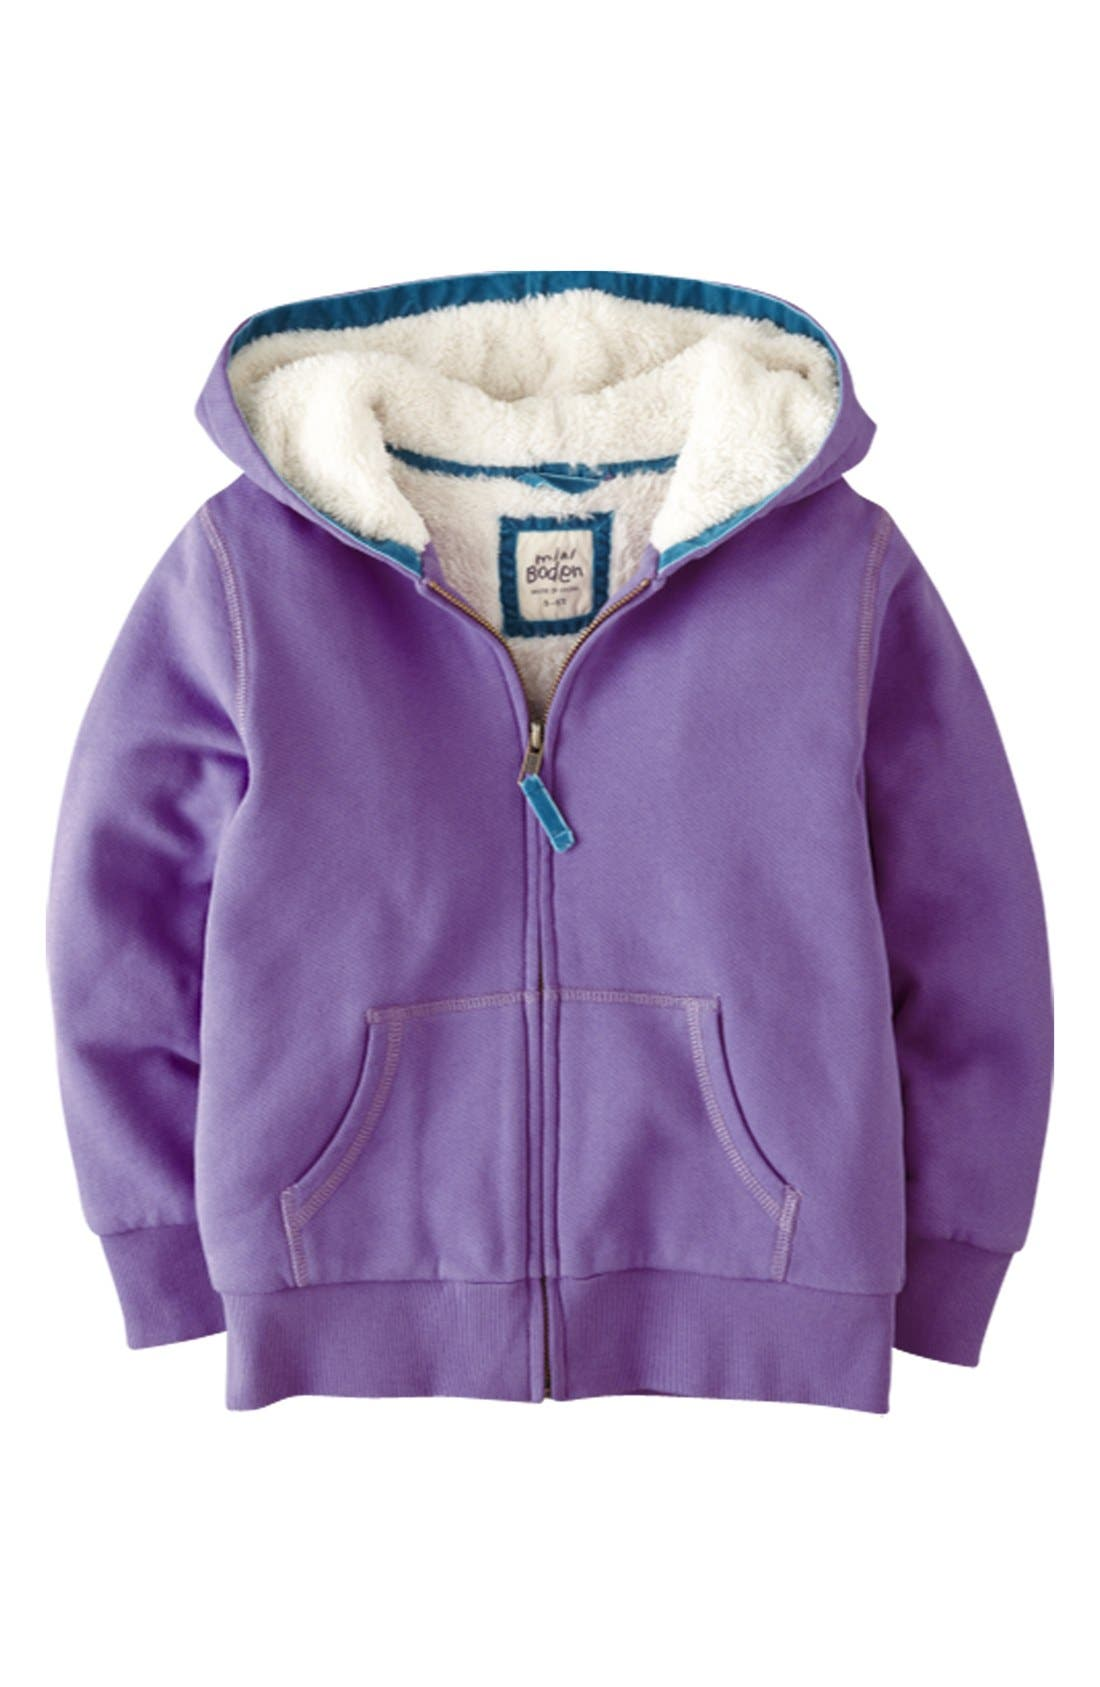 Main Image - Mini Boden 'Shaggy' Lined Jacket (Toddler Girls)